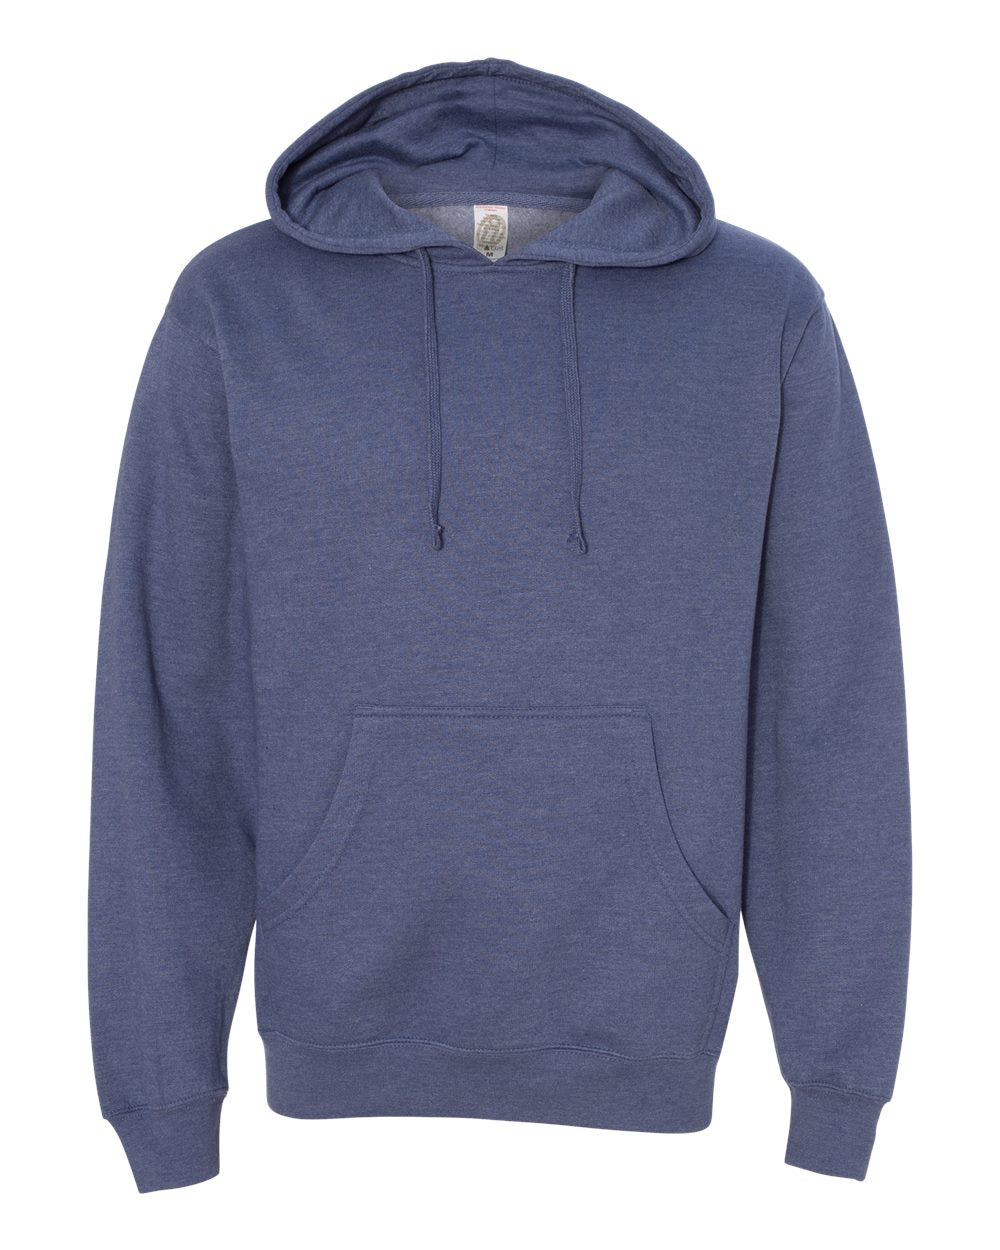 Copy of Independent - Midweight Hooded Pullover Sweatshirt - Silkscreen - SS4500